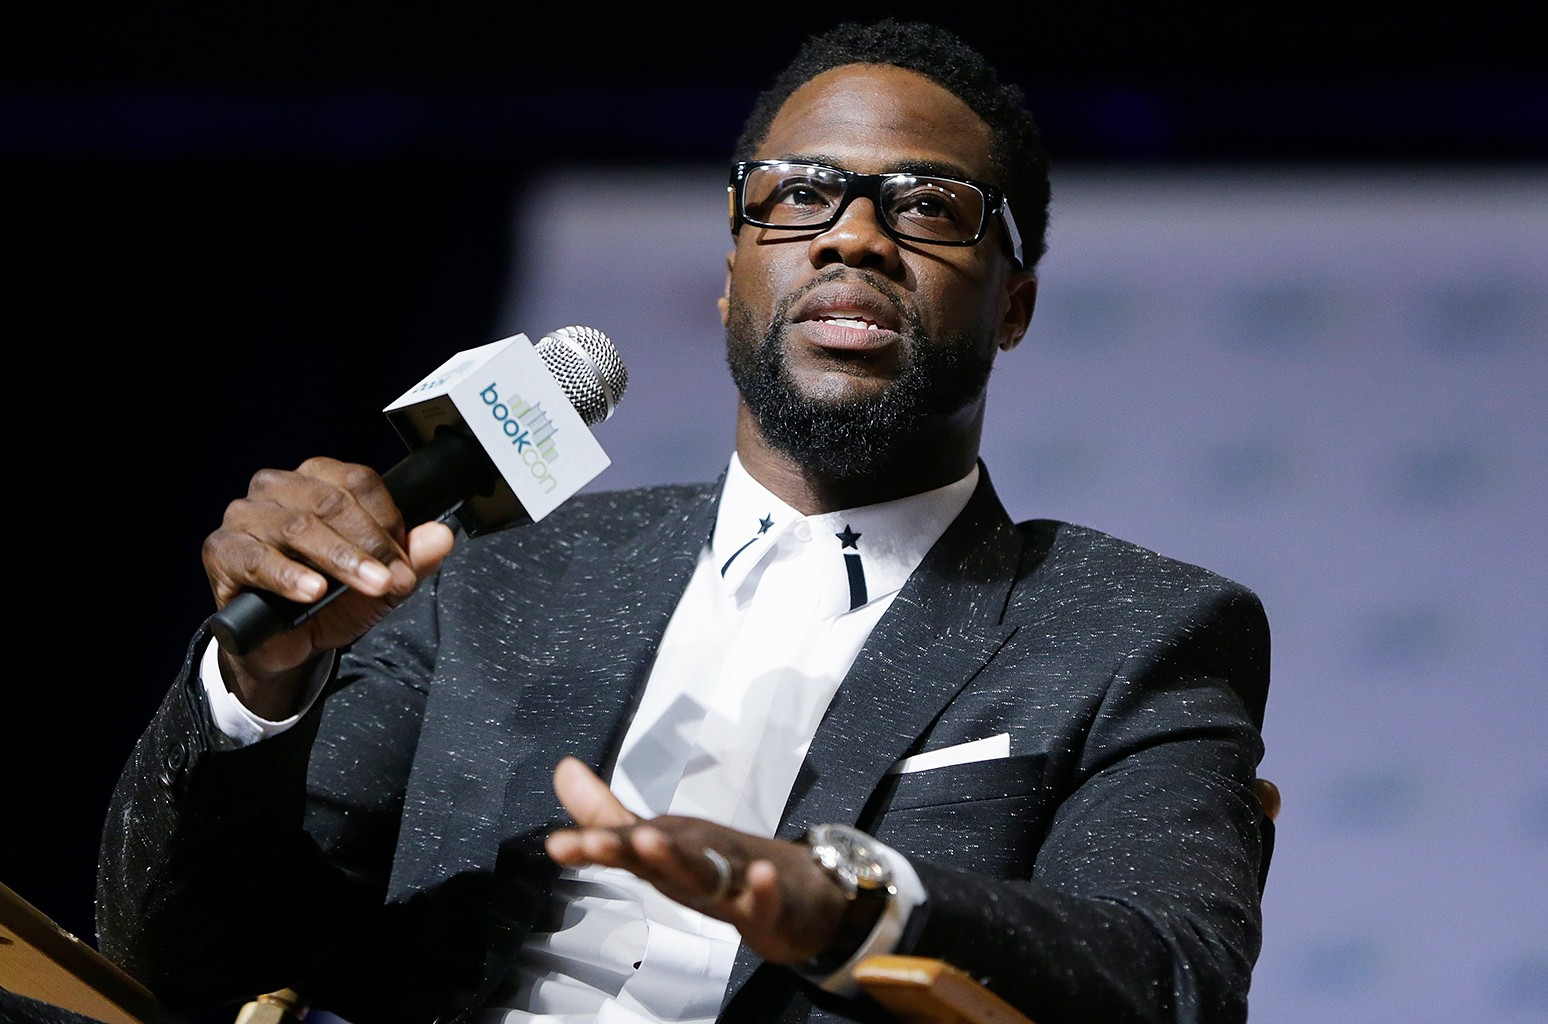 Kevin Hart speaks at the Javits Center on June 4, 2017 in New York City.